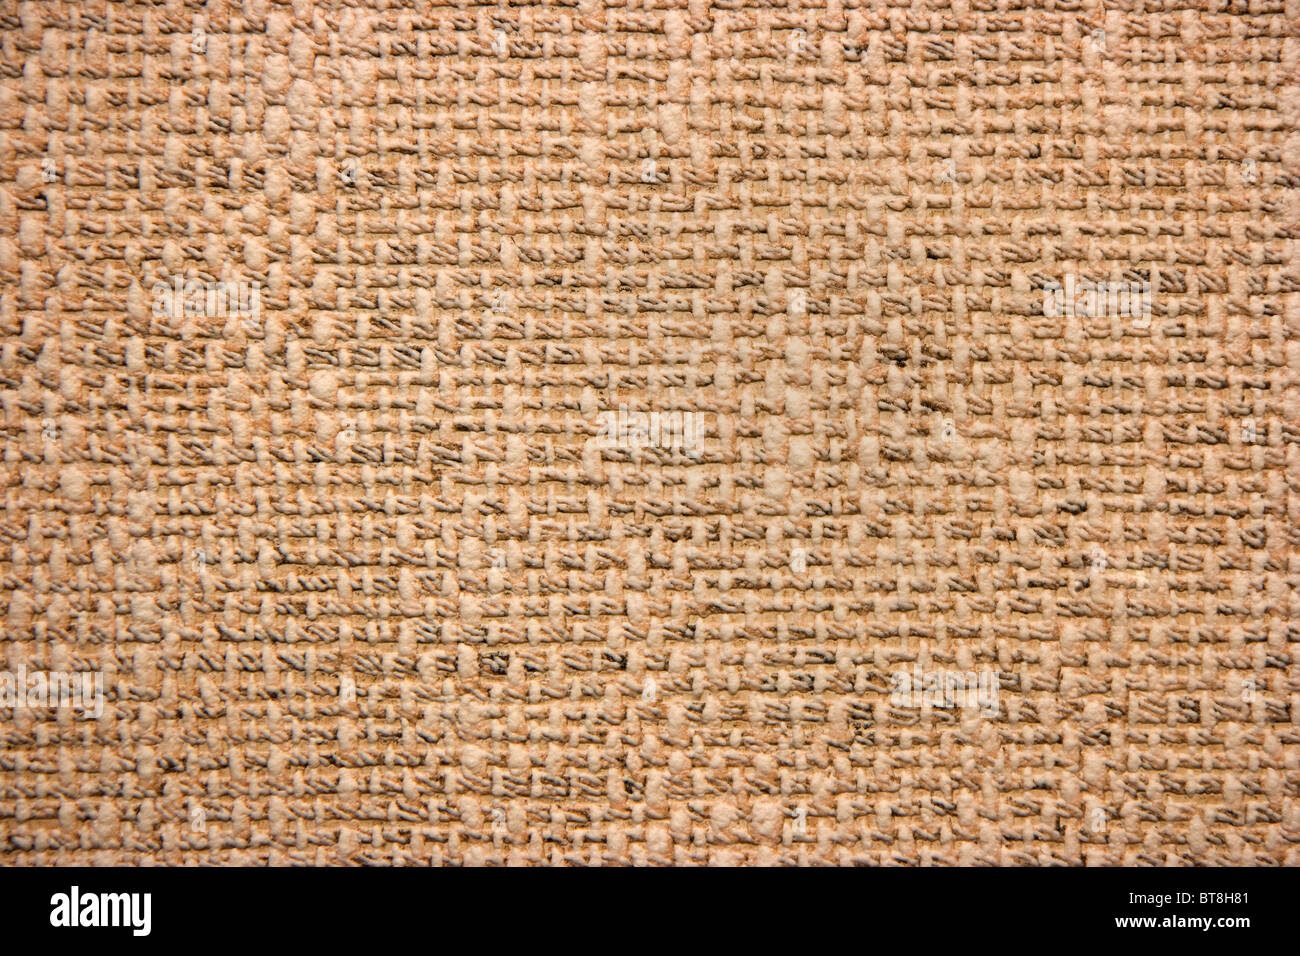 Photo of a structure of wall-paper in yellowy-brown tones - Stock Image